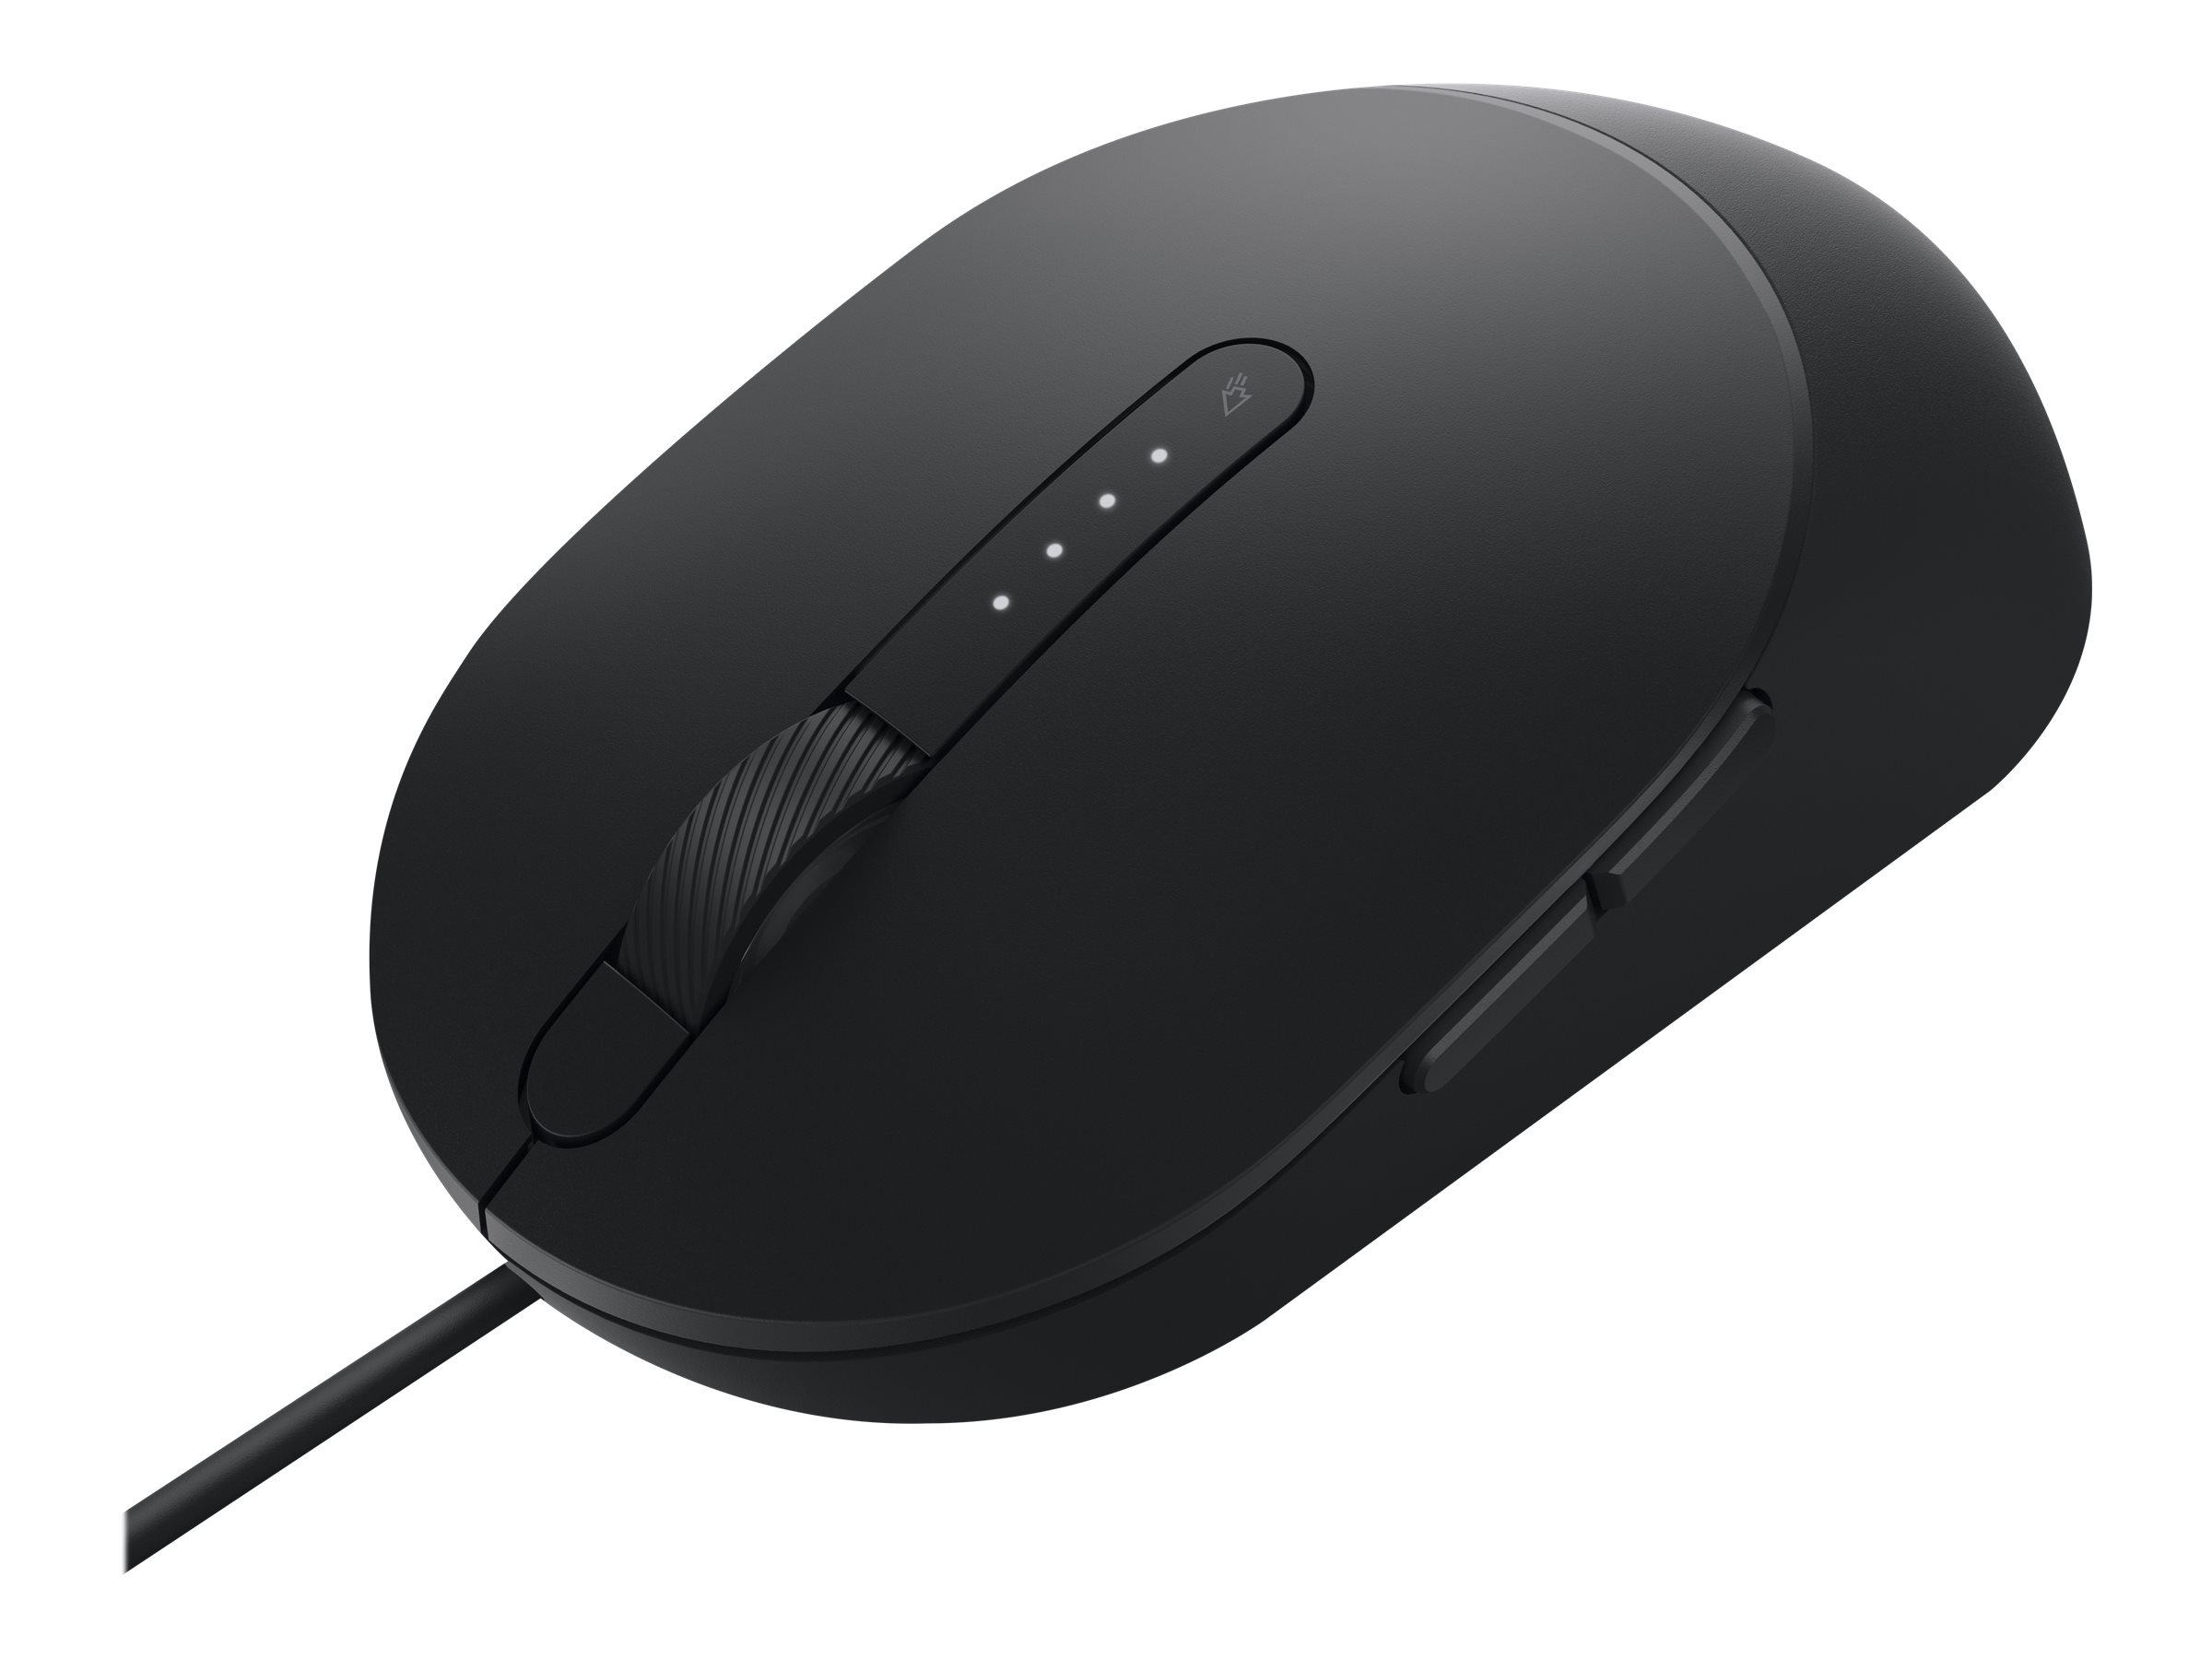 Dell MS3220 - mouse - USB 2.0 - black